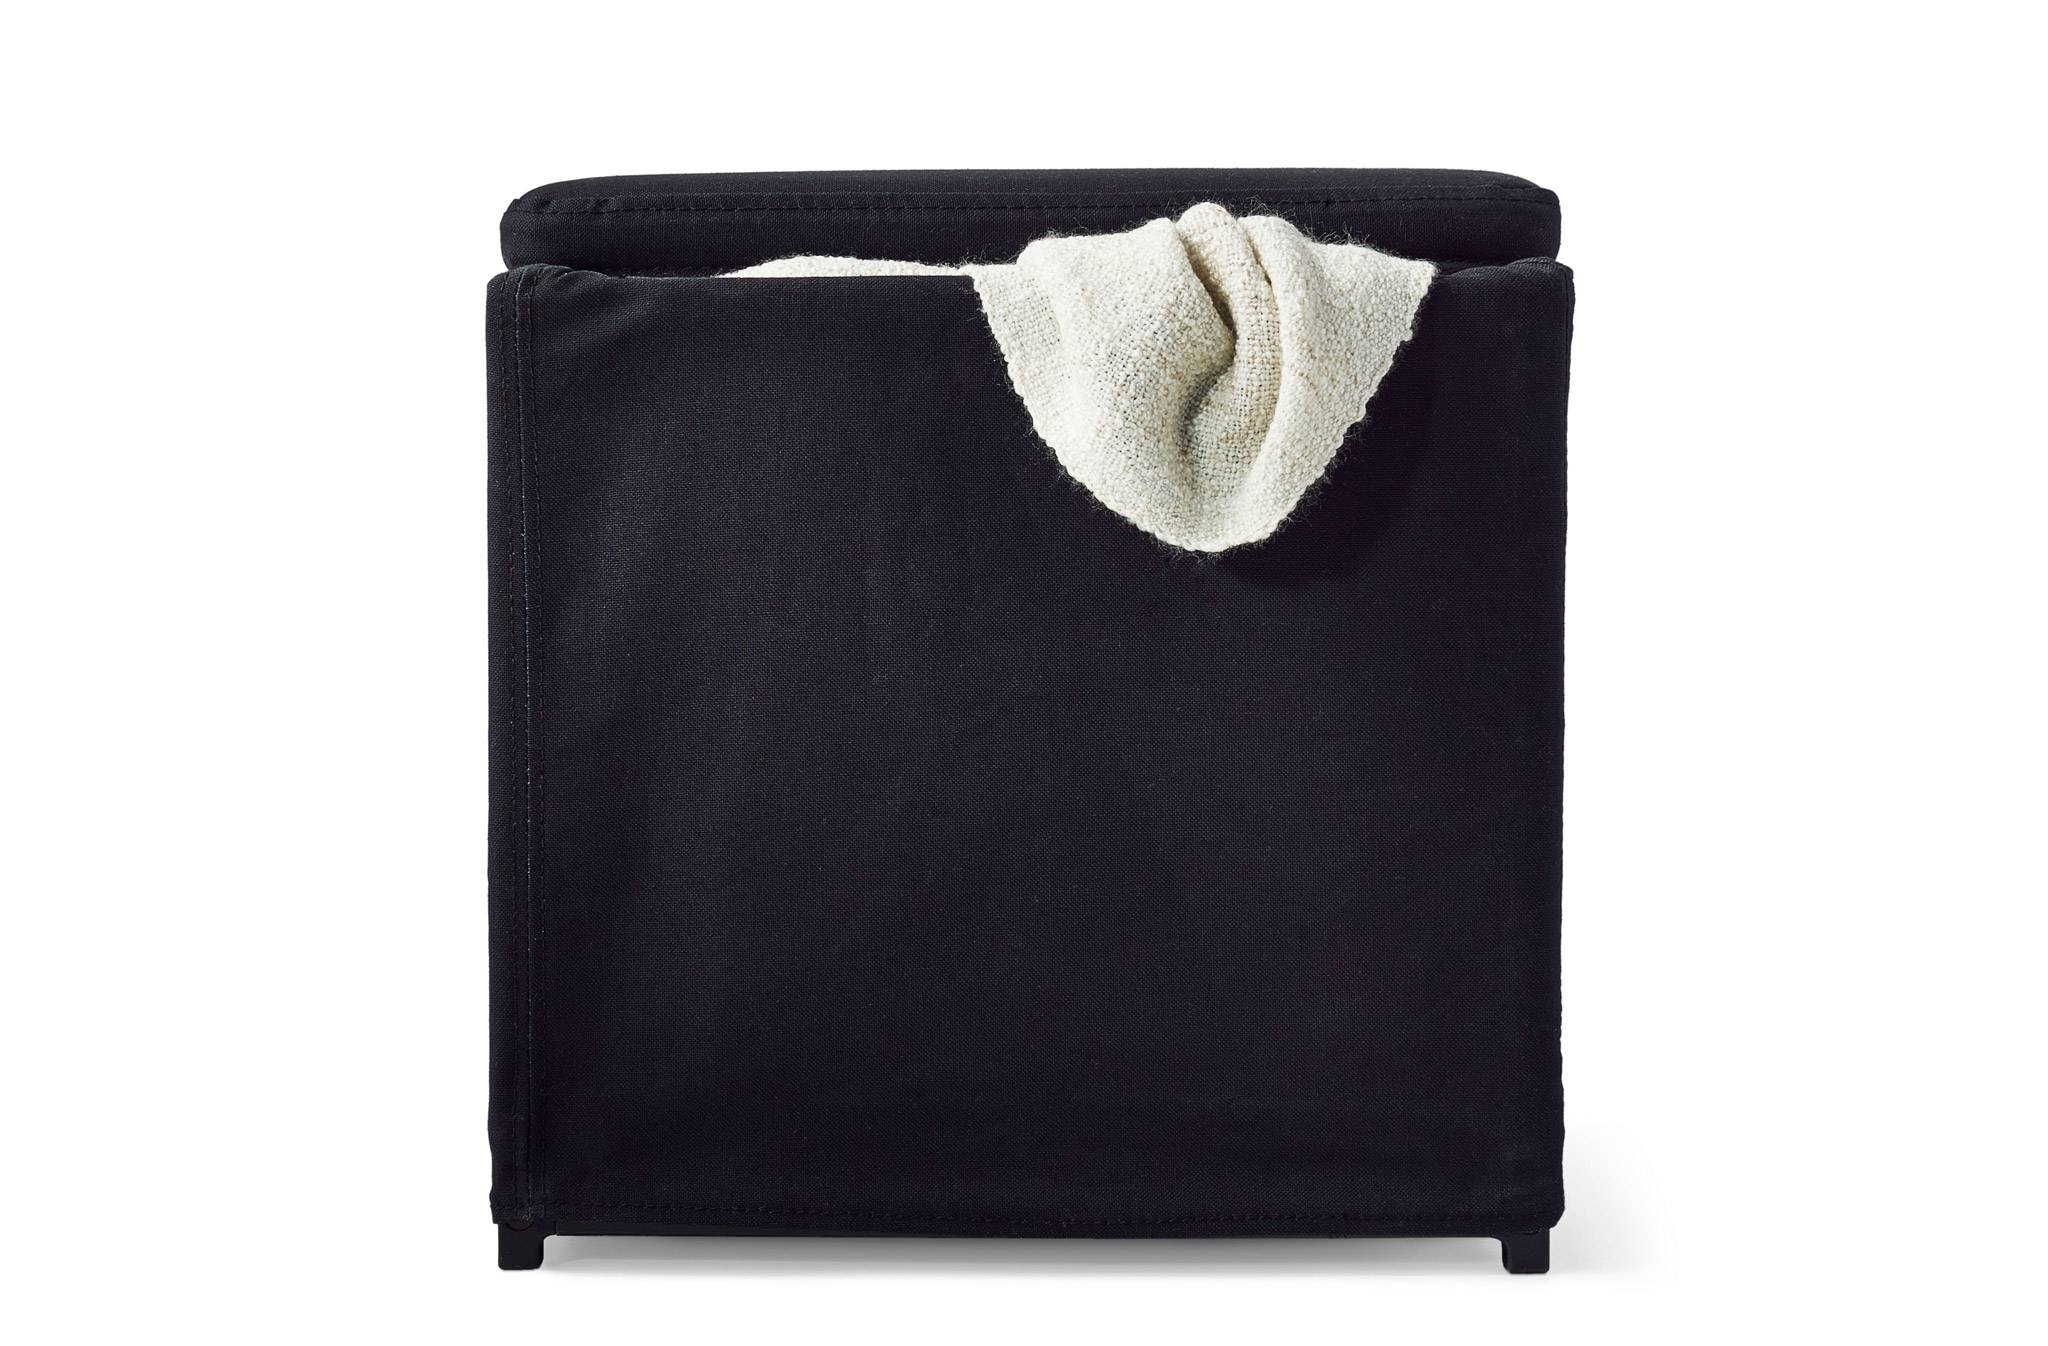 Fabric Footstools | Fabric Pouffe | Ikea pertaining to Footstools and Pouffes (Image 5 of 30)